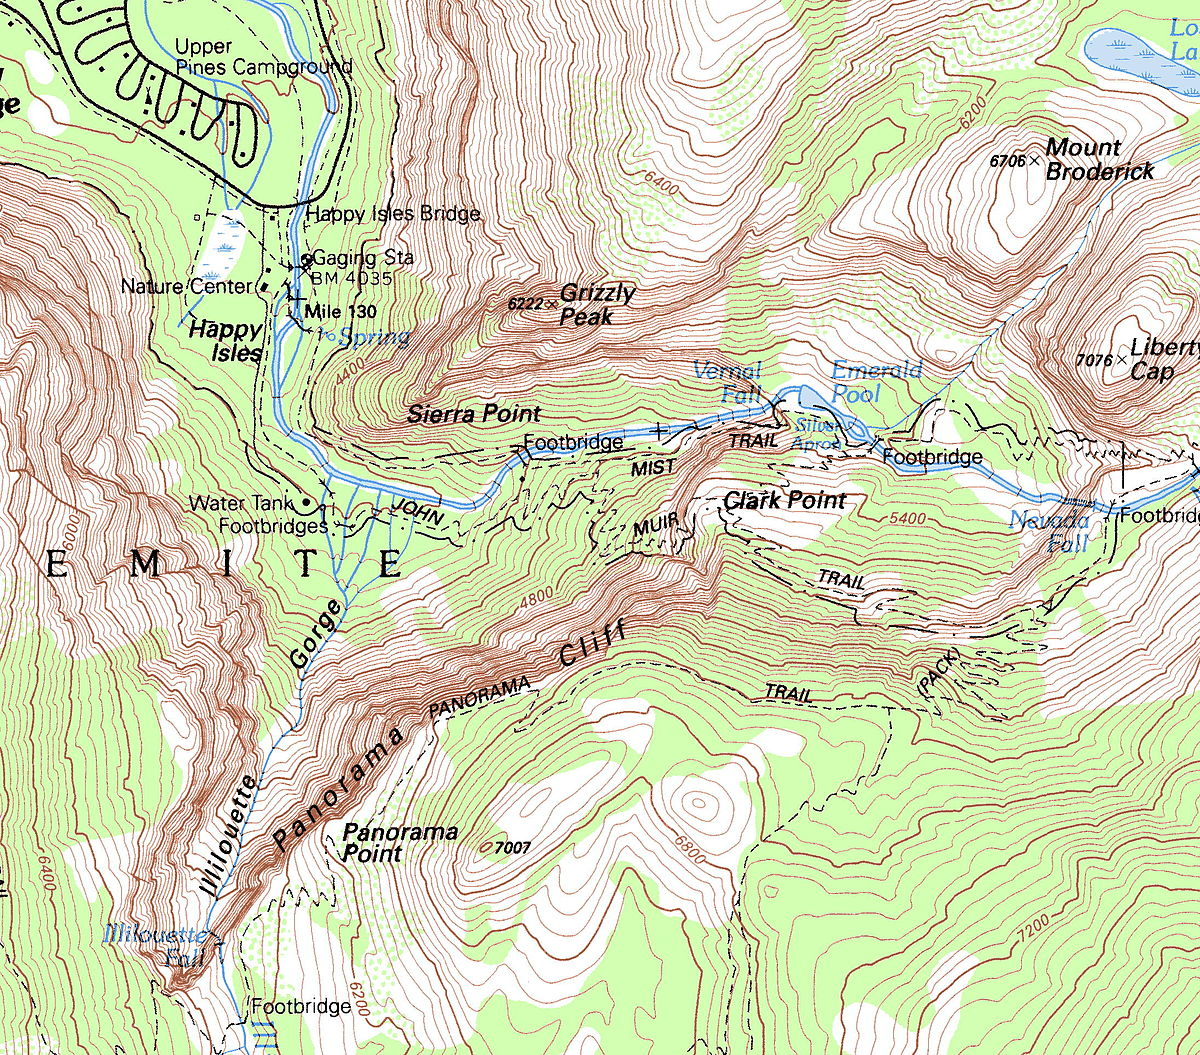 yosemite half dome trail map with Grizzly Peak  Mariposa County  California on Hadome together with Yosemite National Park Map likewise Illilouette Fall Springtime l also Yosemite Valley Free Shuttle Bus furthermore 5 Ways To Attract Bears.